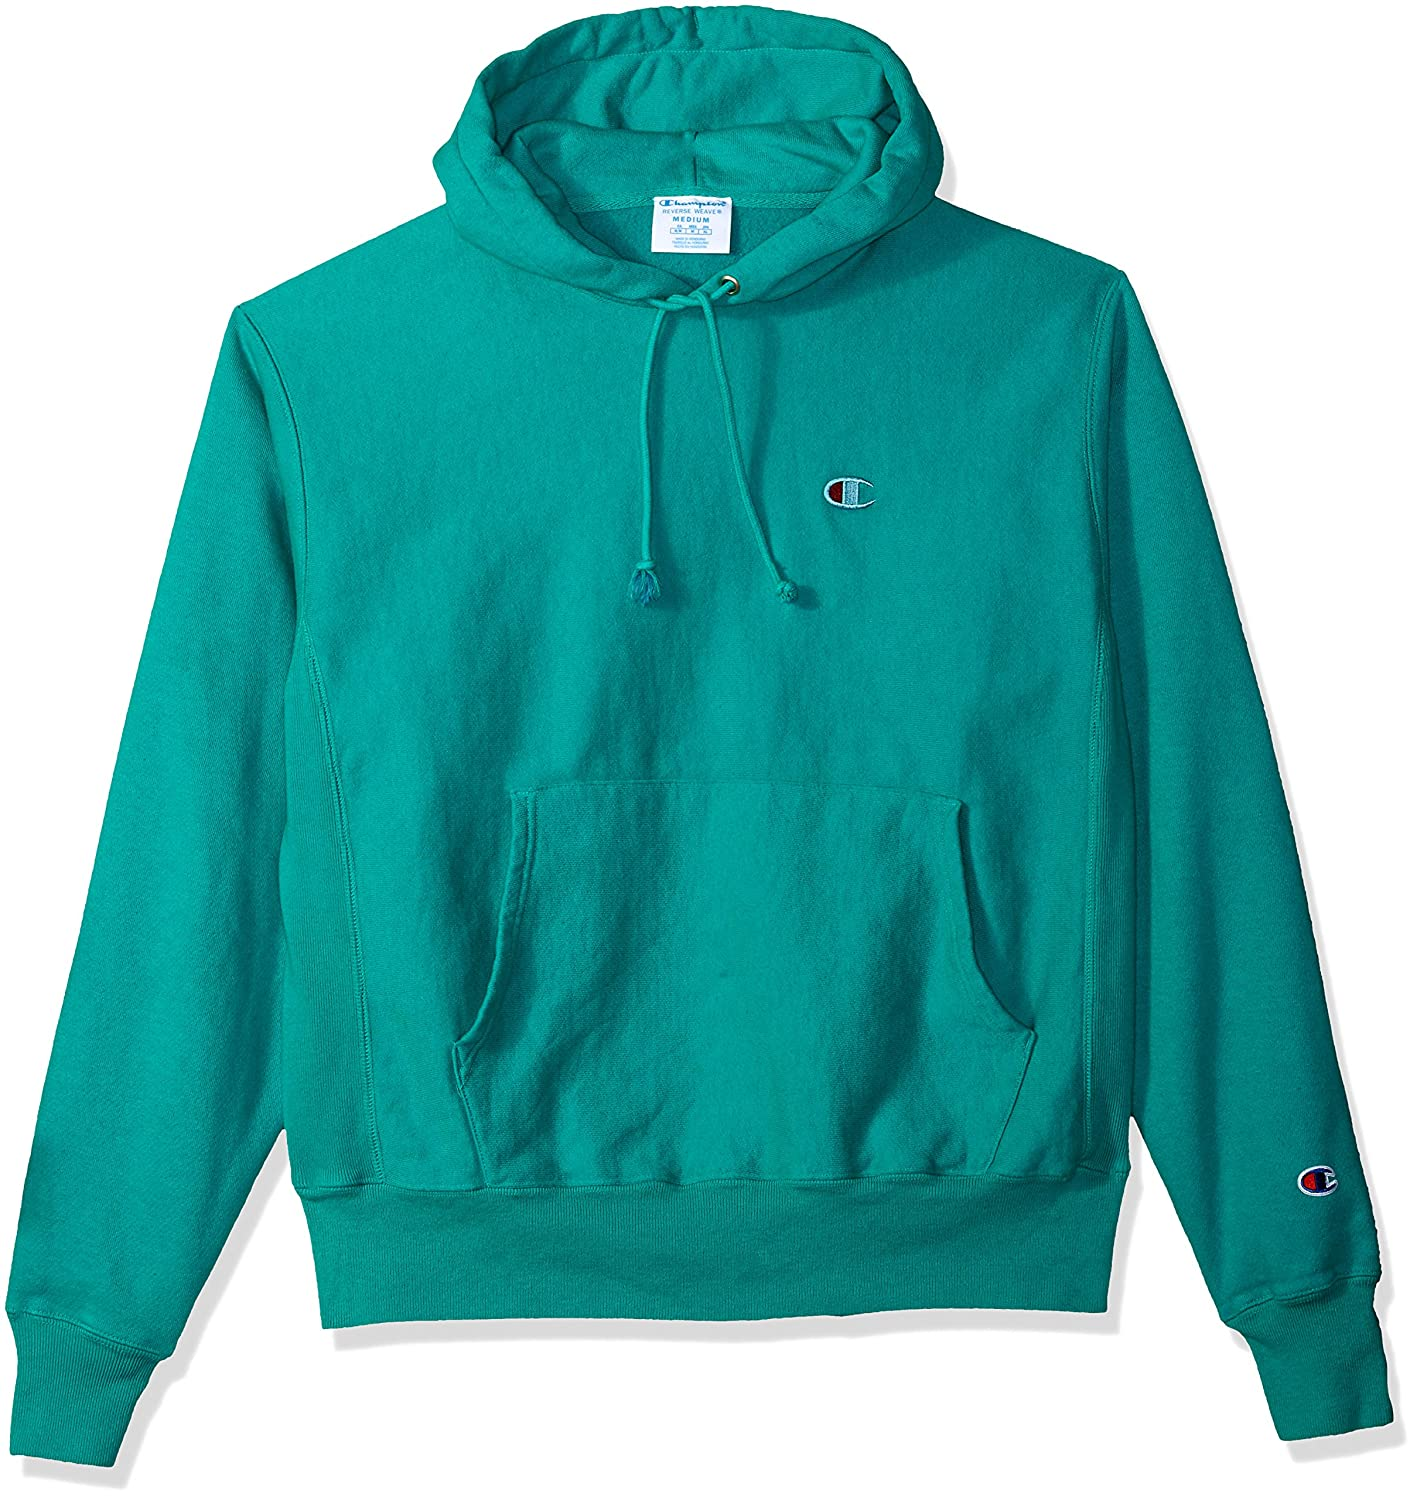 afebd05d56fcc4 Amazon.com  Champion LIFE Men s Reverse Weave Pullover Hoodie  Clothing